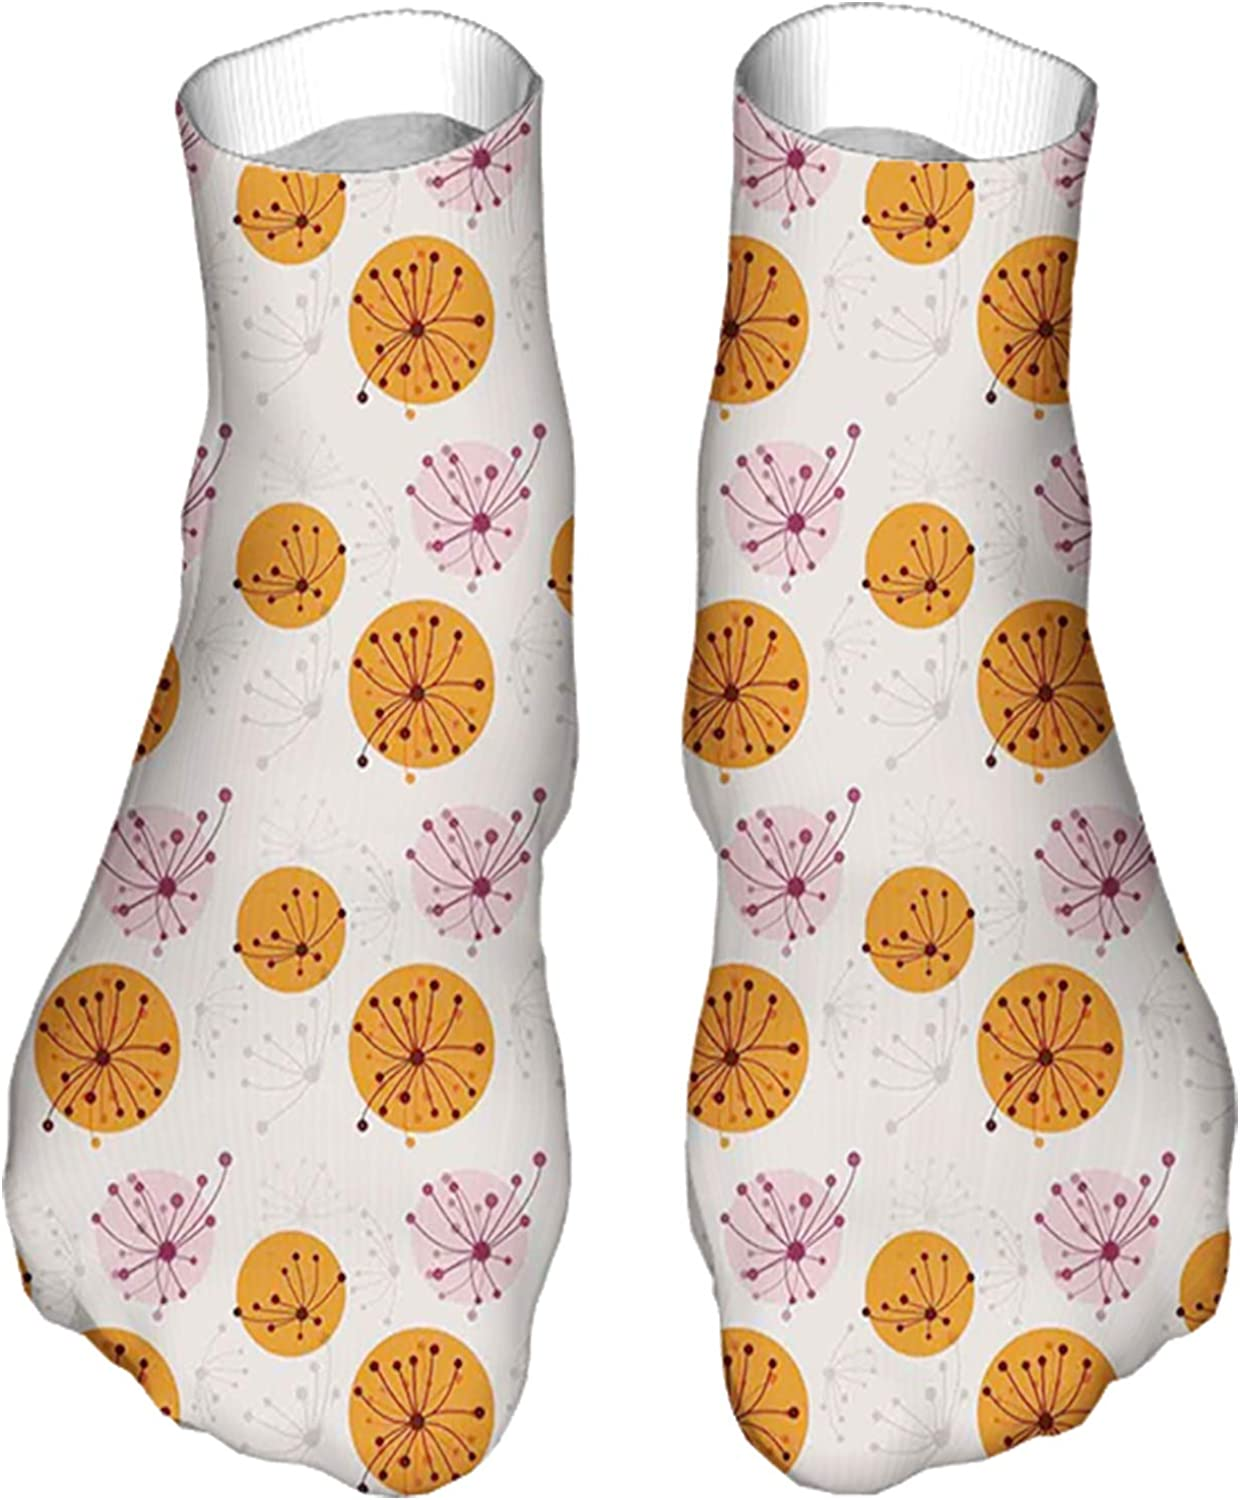 Women's Colorful Patterned Unisex Low Cut/No Show Socks,Graphic Floral Motif on Pink and Orange Spots Nature